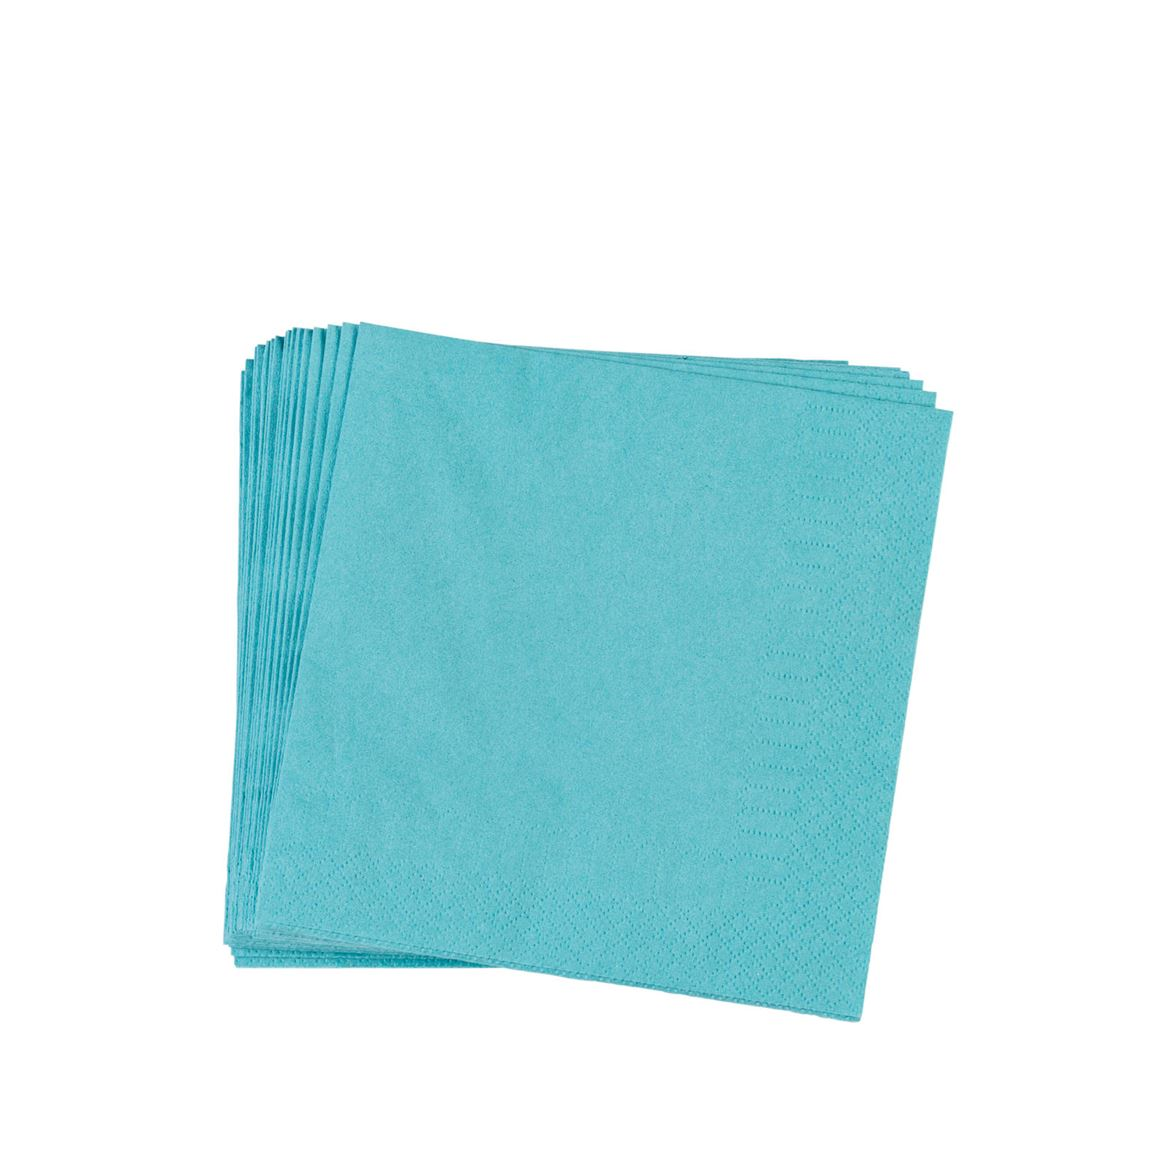 UNI Set de 20 serviettes bleu Larg. 33 x Long. 33 cm_uni-set-de-20-serviettes-bleu-larg--33-x-long--33-cm